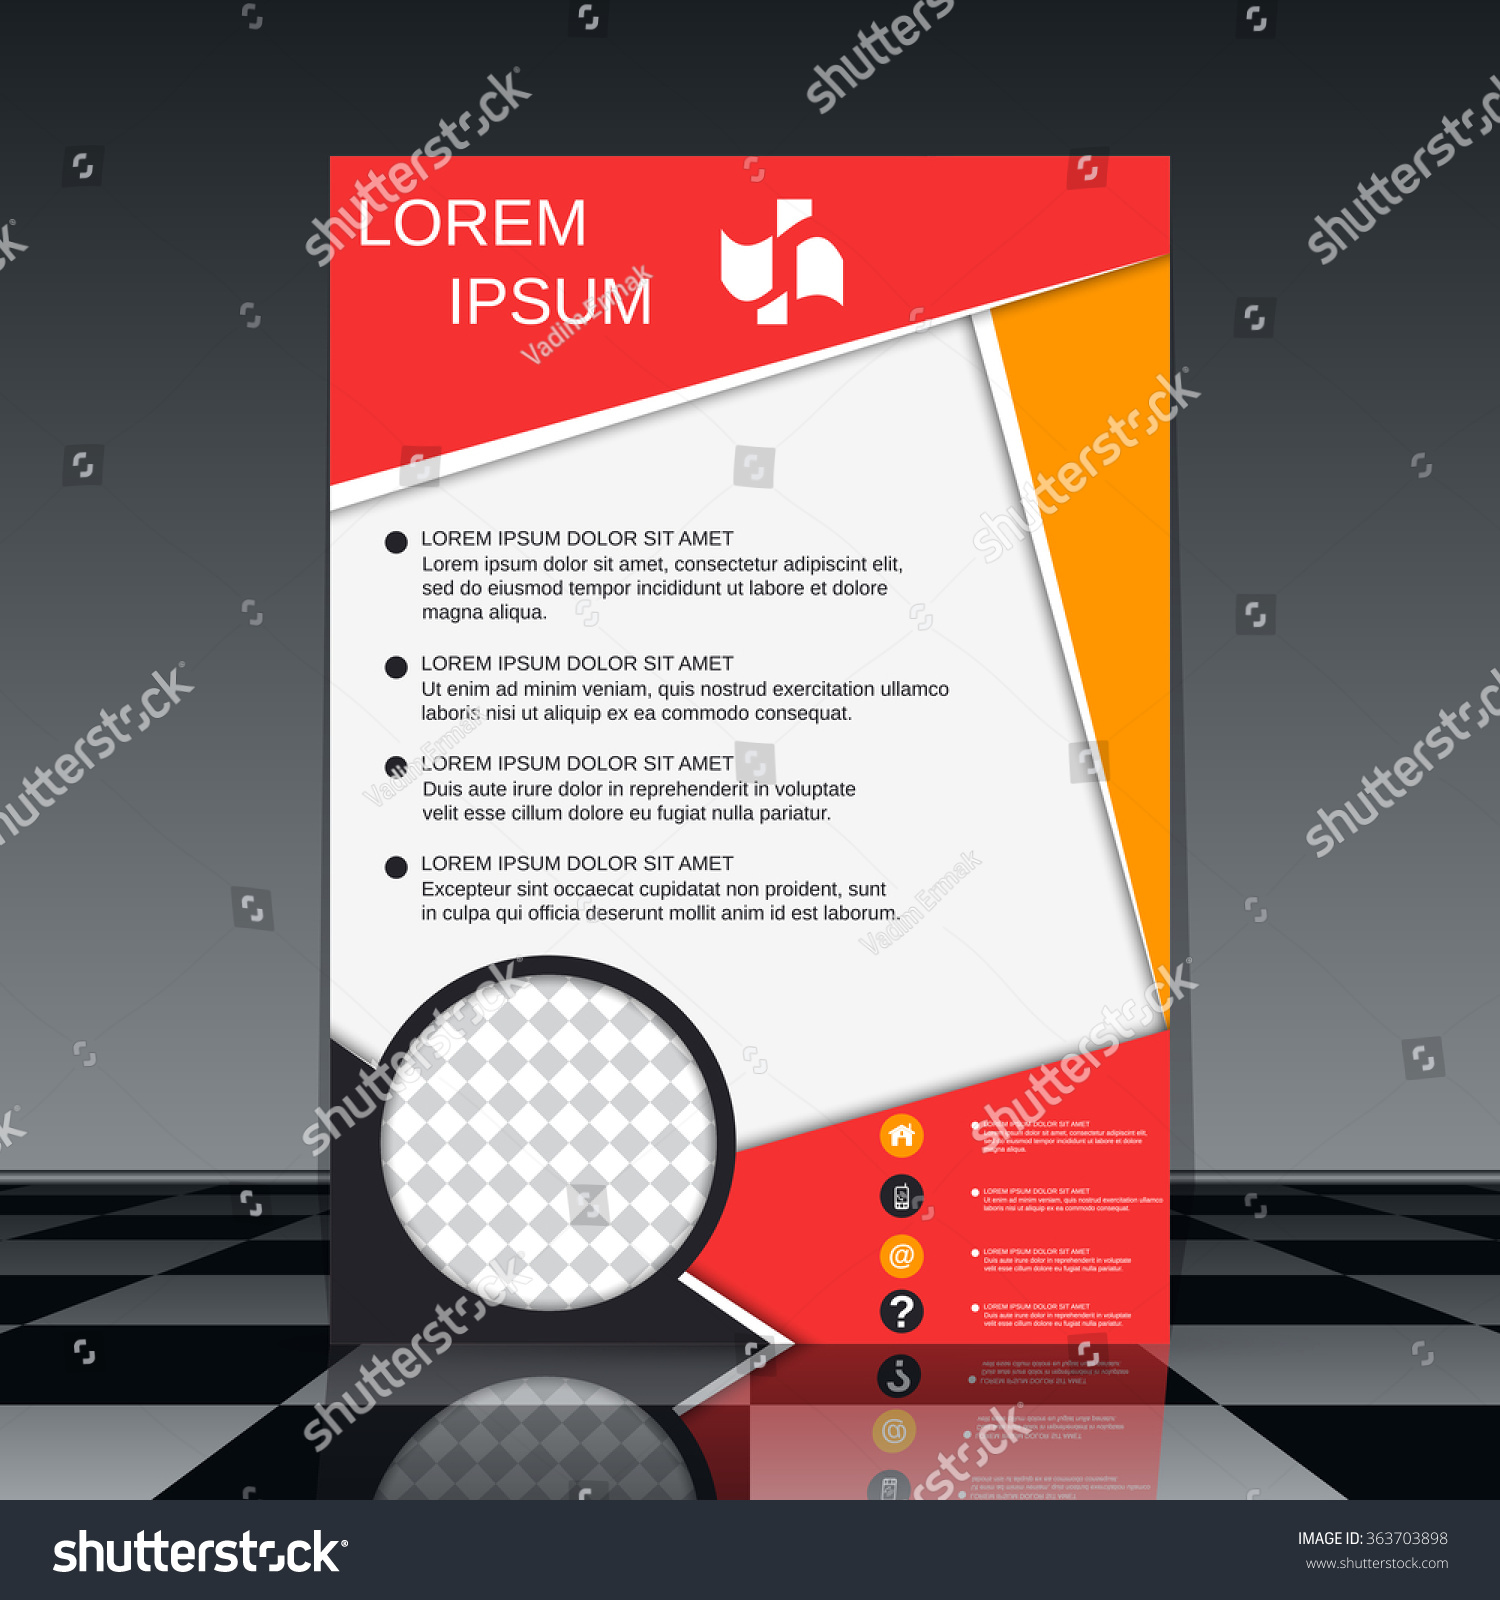 professional flyer template brochure mockup business stock vector professional flyer template brochure mockup business report magazine cover placard